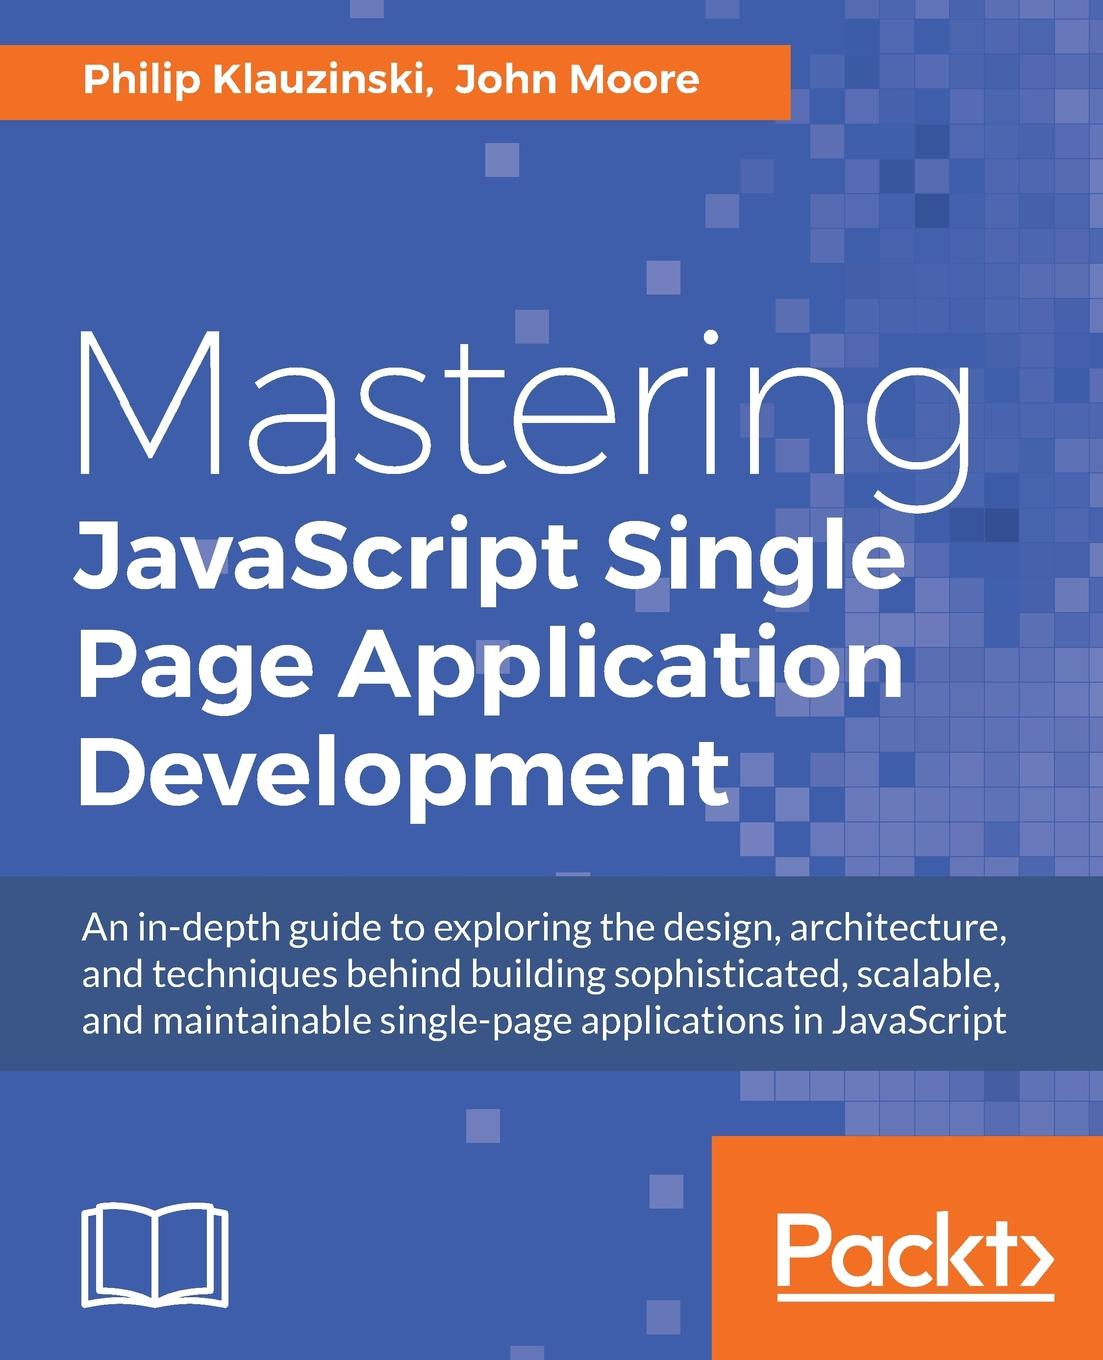 Philip Klauzinski, John Moore Mastering JavaScript Single Page Application Development philip klauzinski john moore mastering javascript single page application development